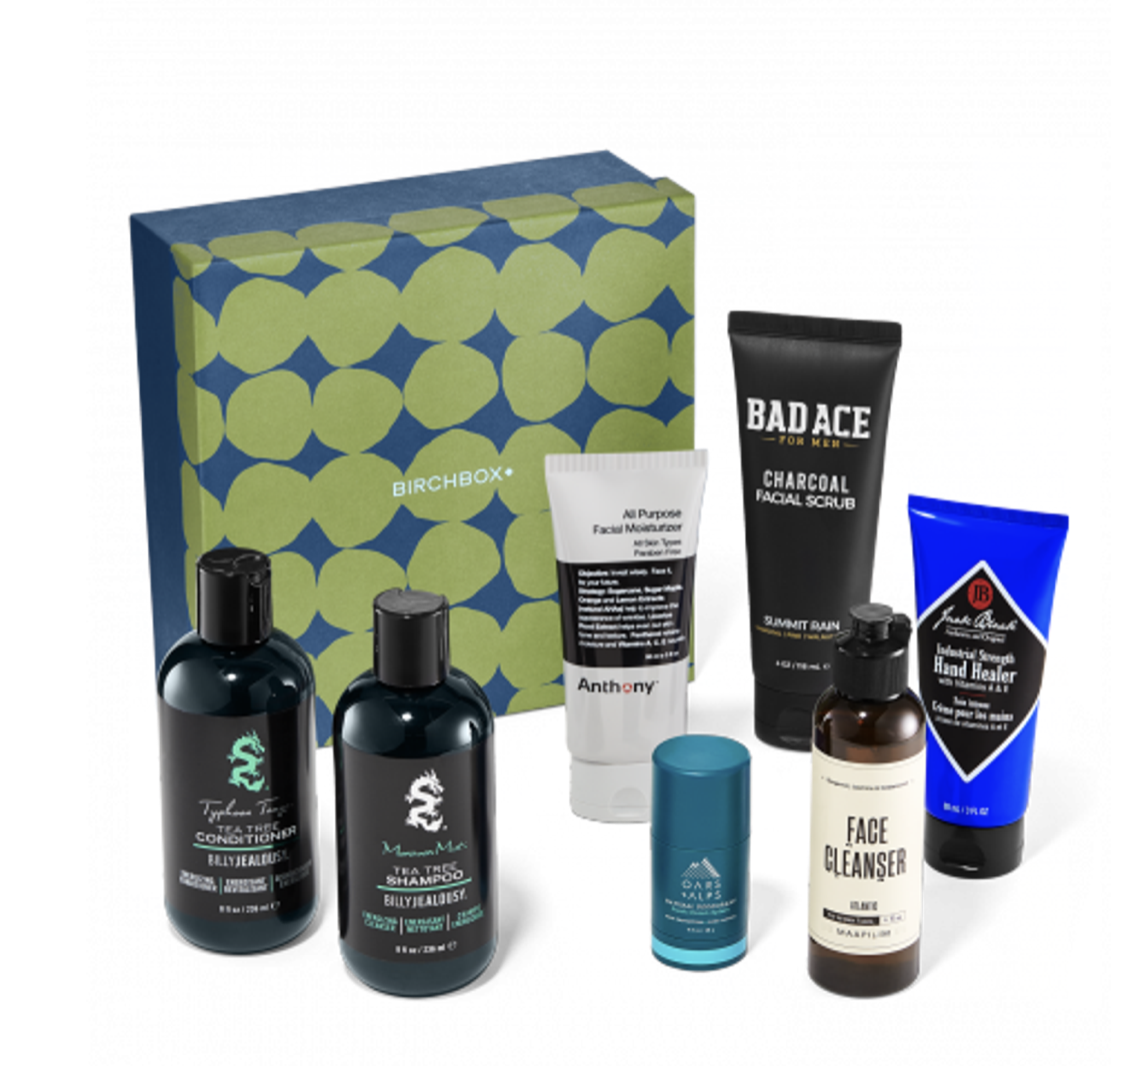 Birchbox Grooming – Best of Grooming Limited Edition Box – On Sale Now